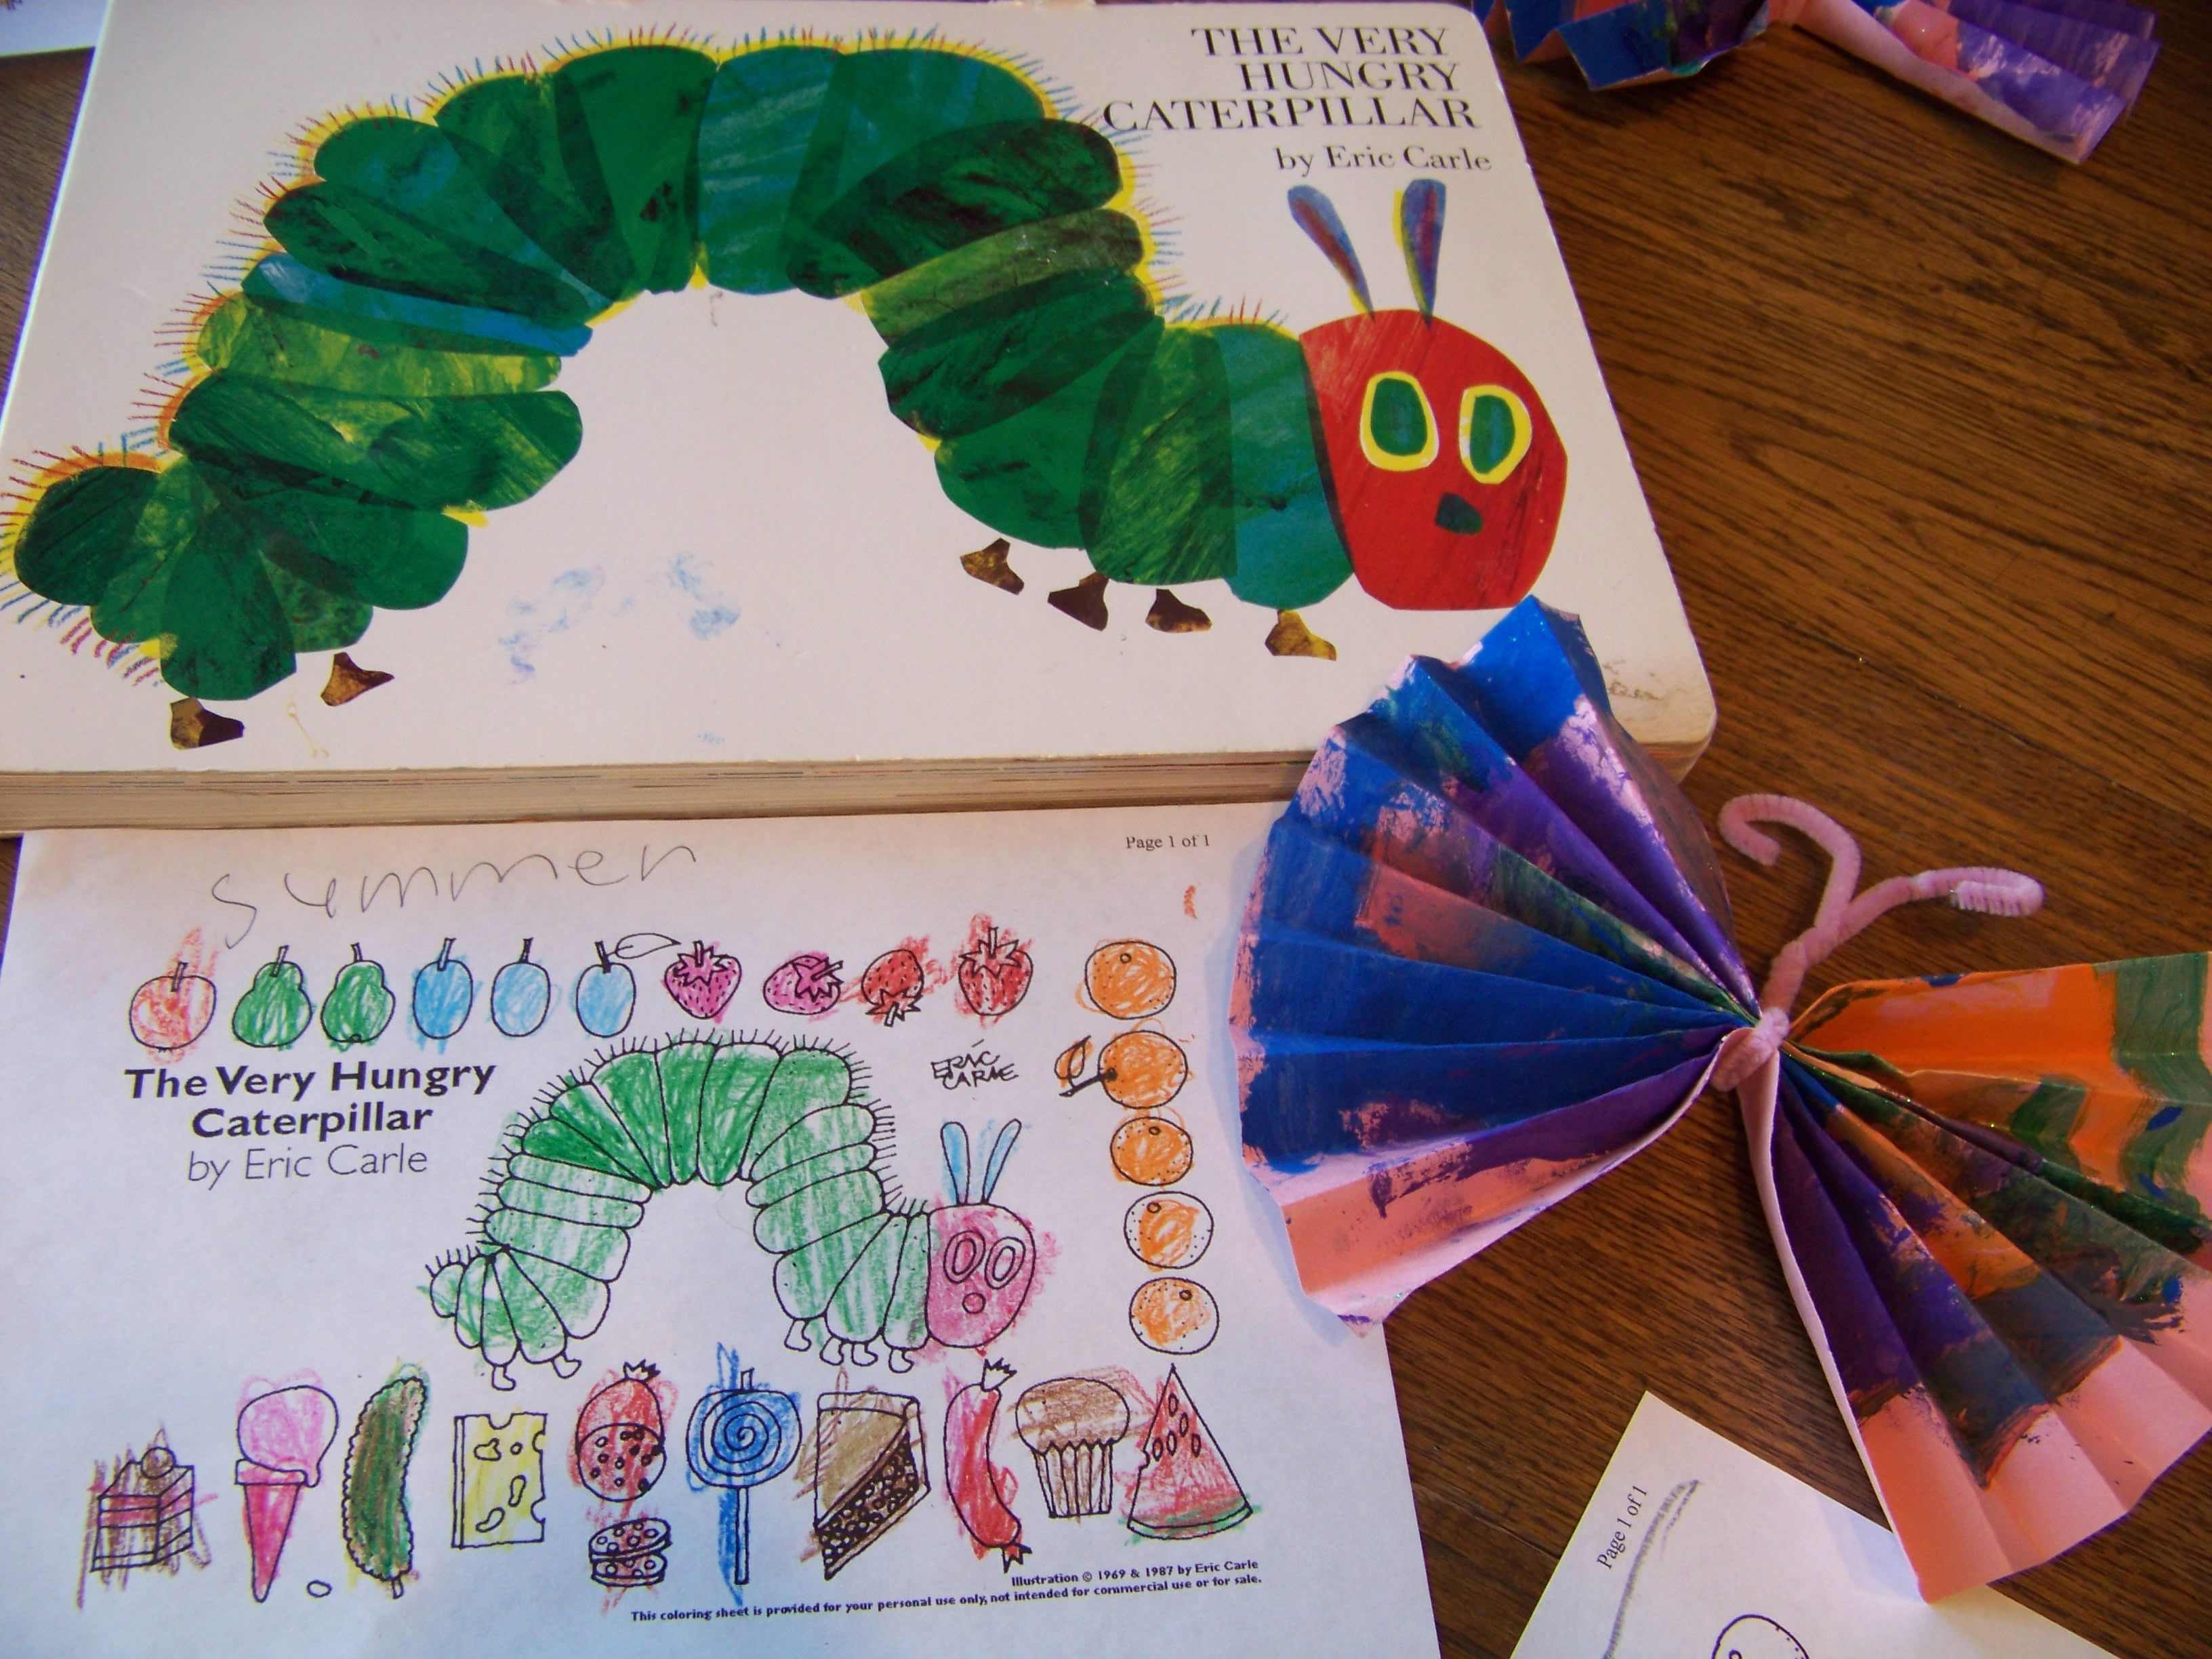 Very Hungry Catapillar Activity Read The Book By Eric